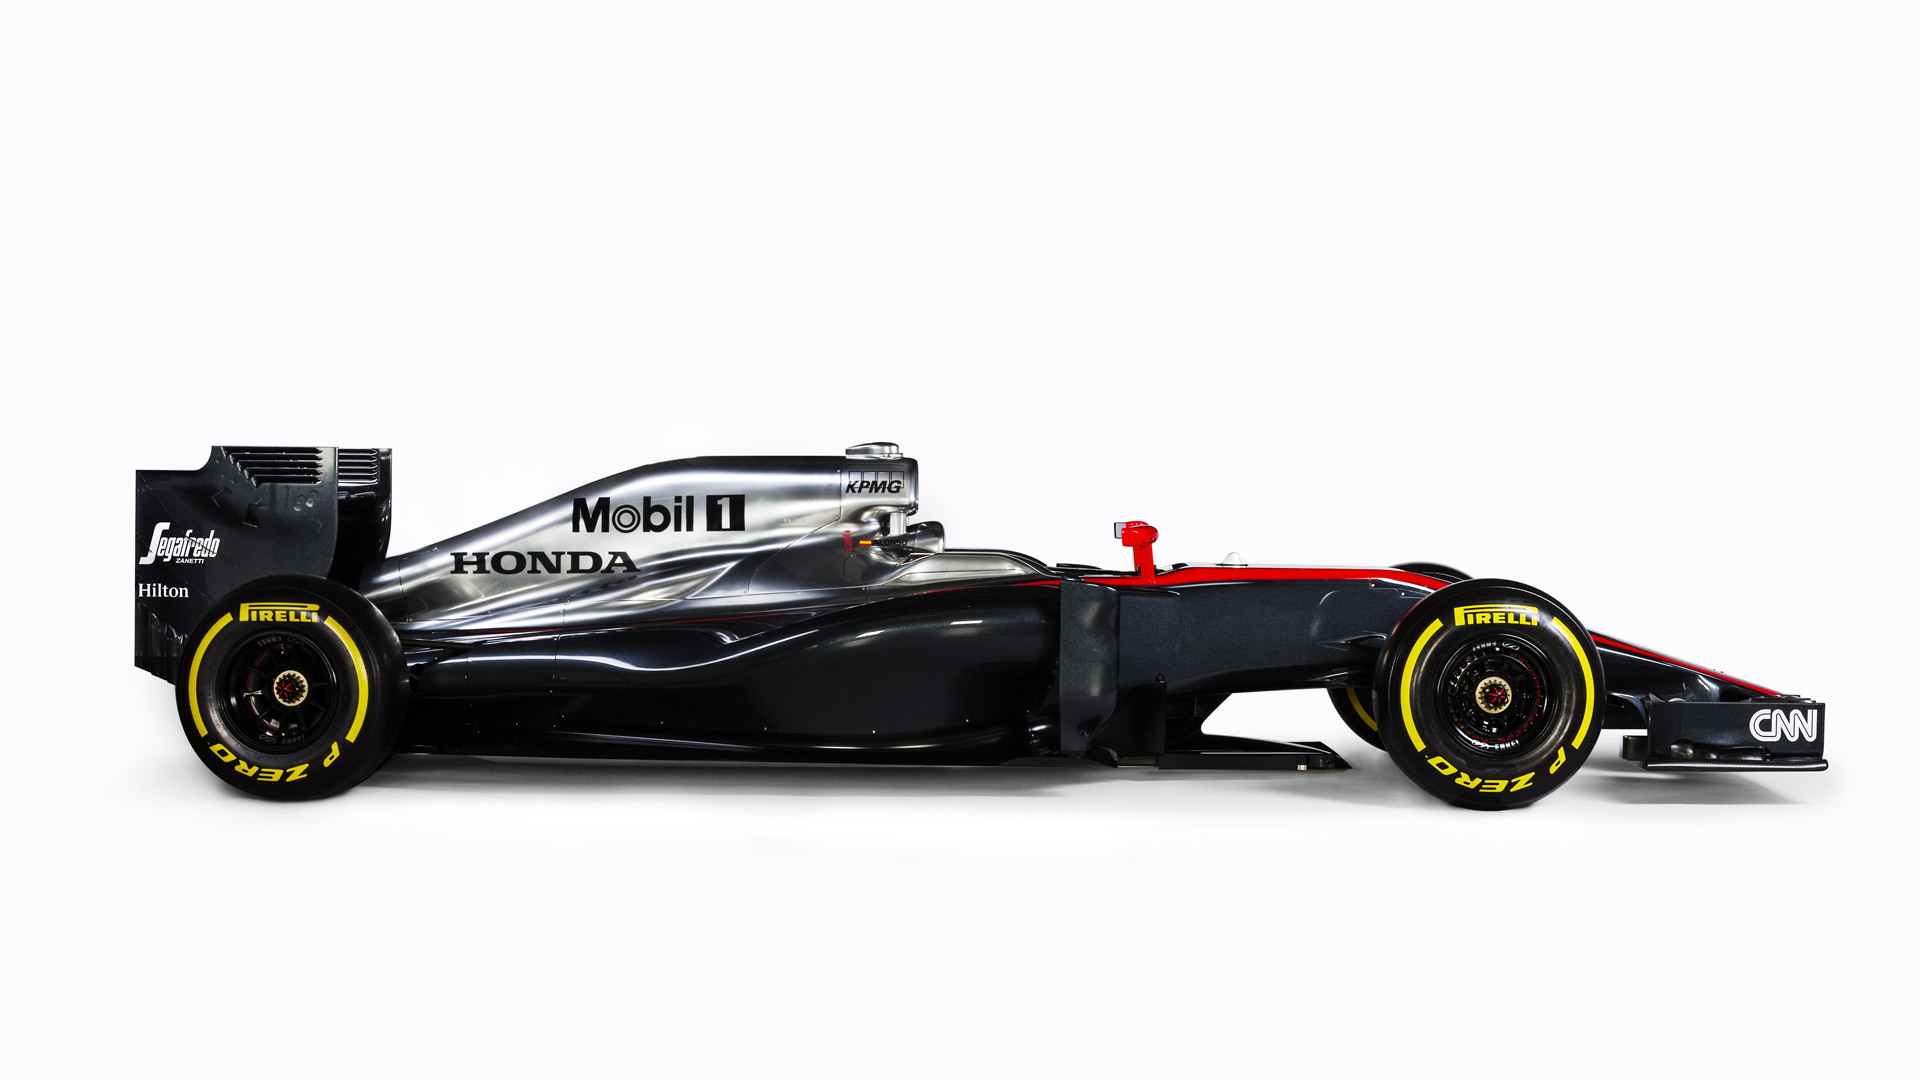 McLaren MP4-30 2015 Formula One car